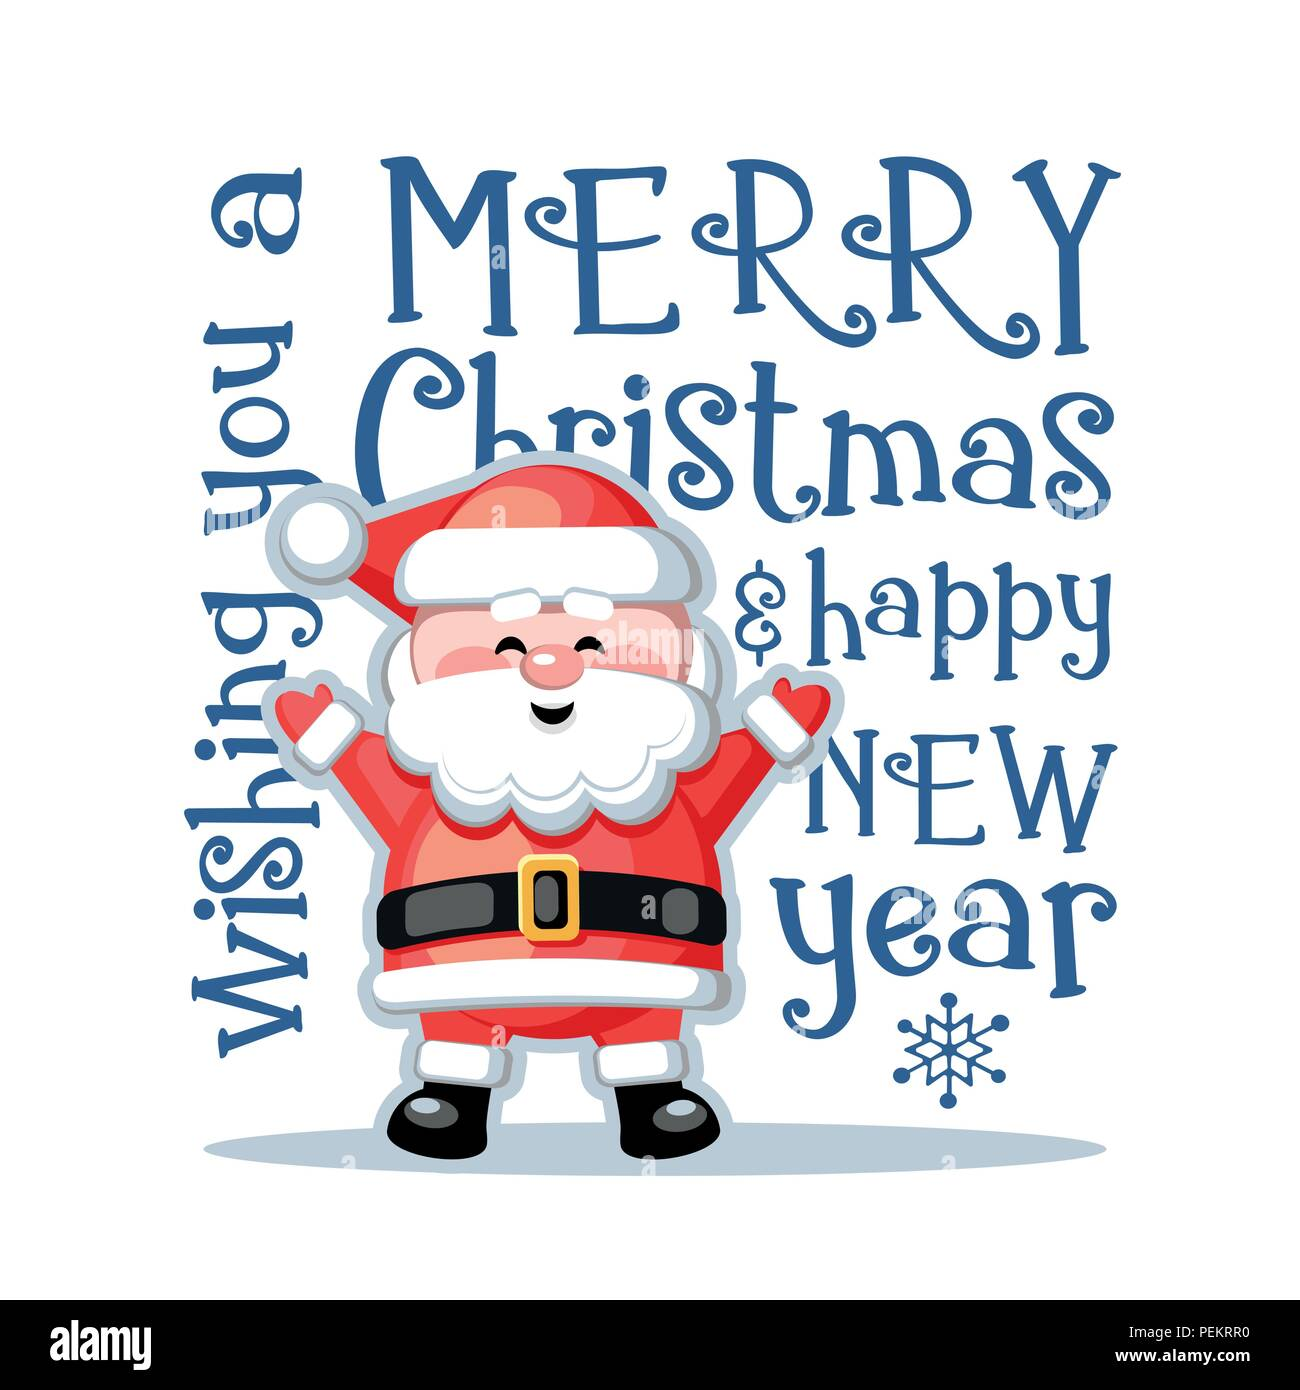 Merry Christmas Funny Images.Merry Christmas And Happy New Year Greeting Card With Funny